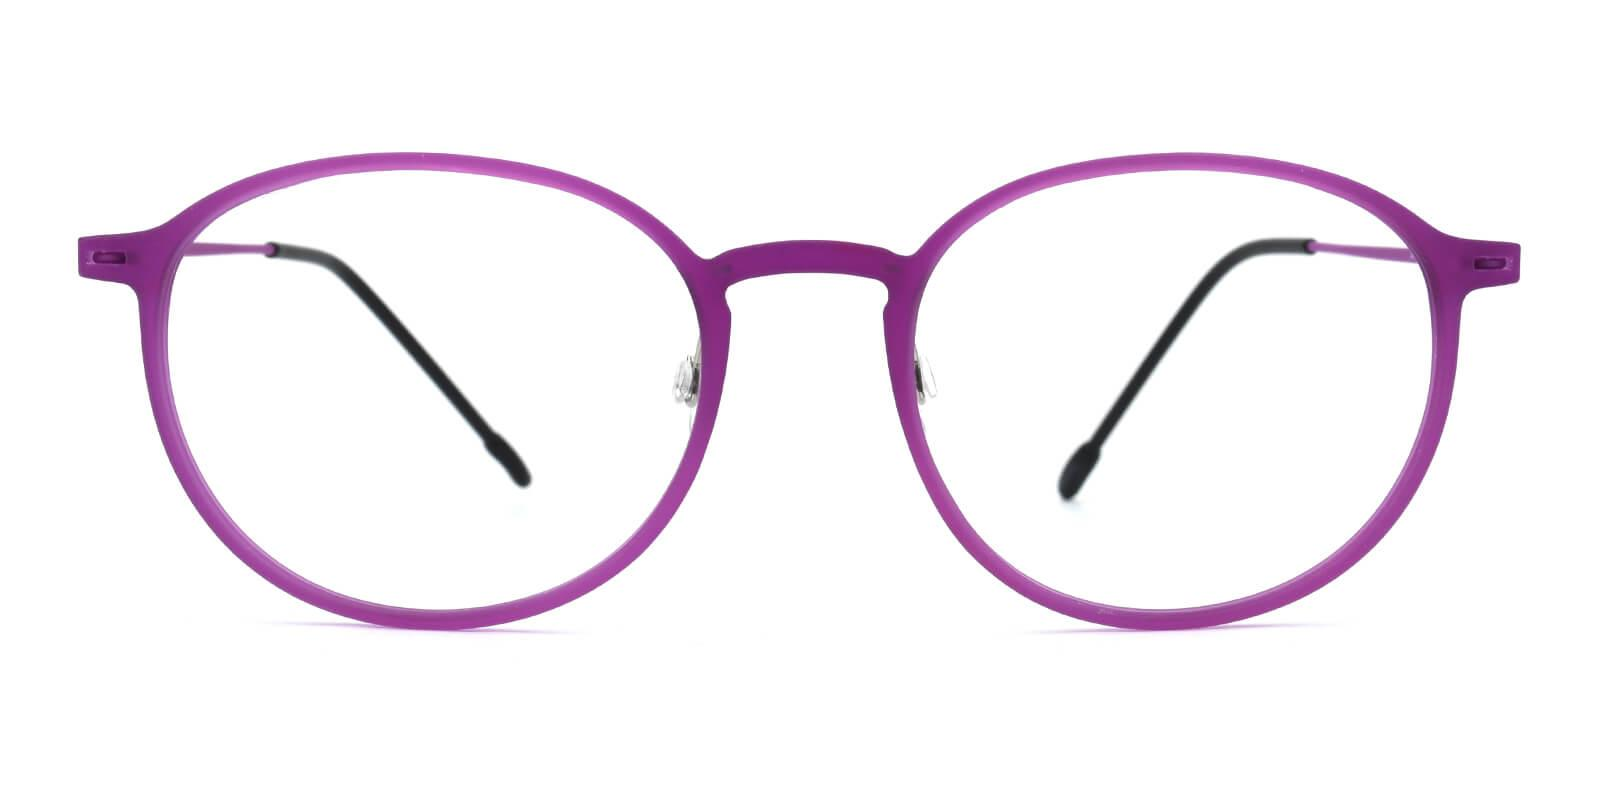 Yunda-Purple-Round-Combination-Eyeglasses-additional2